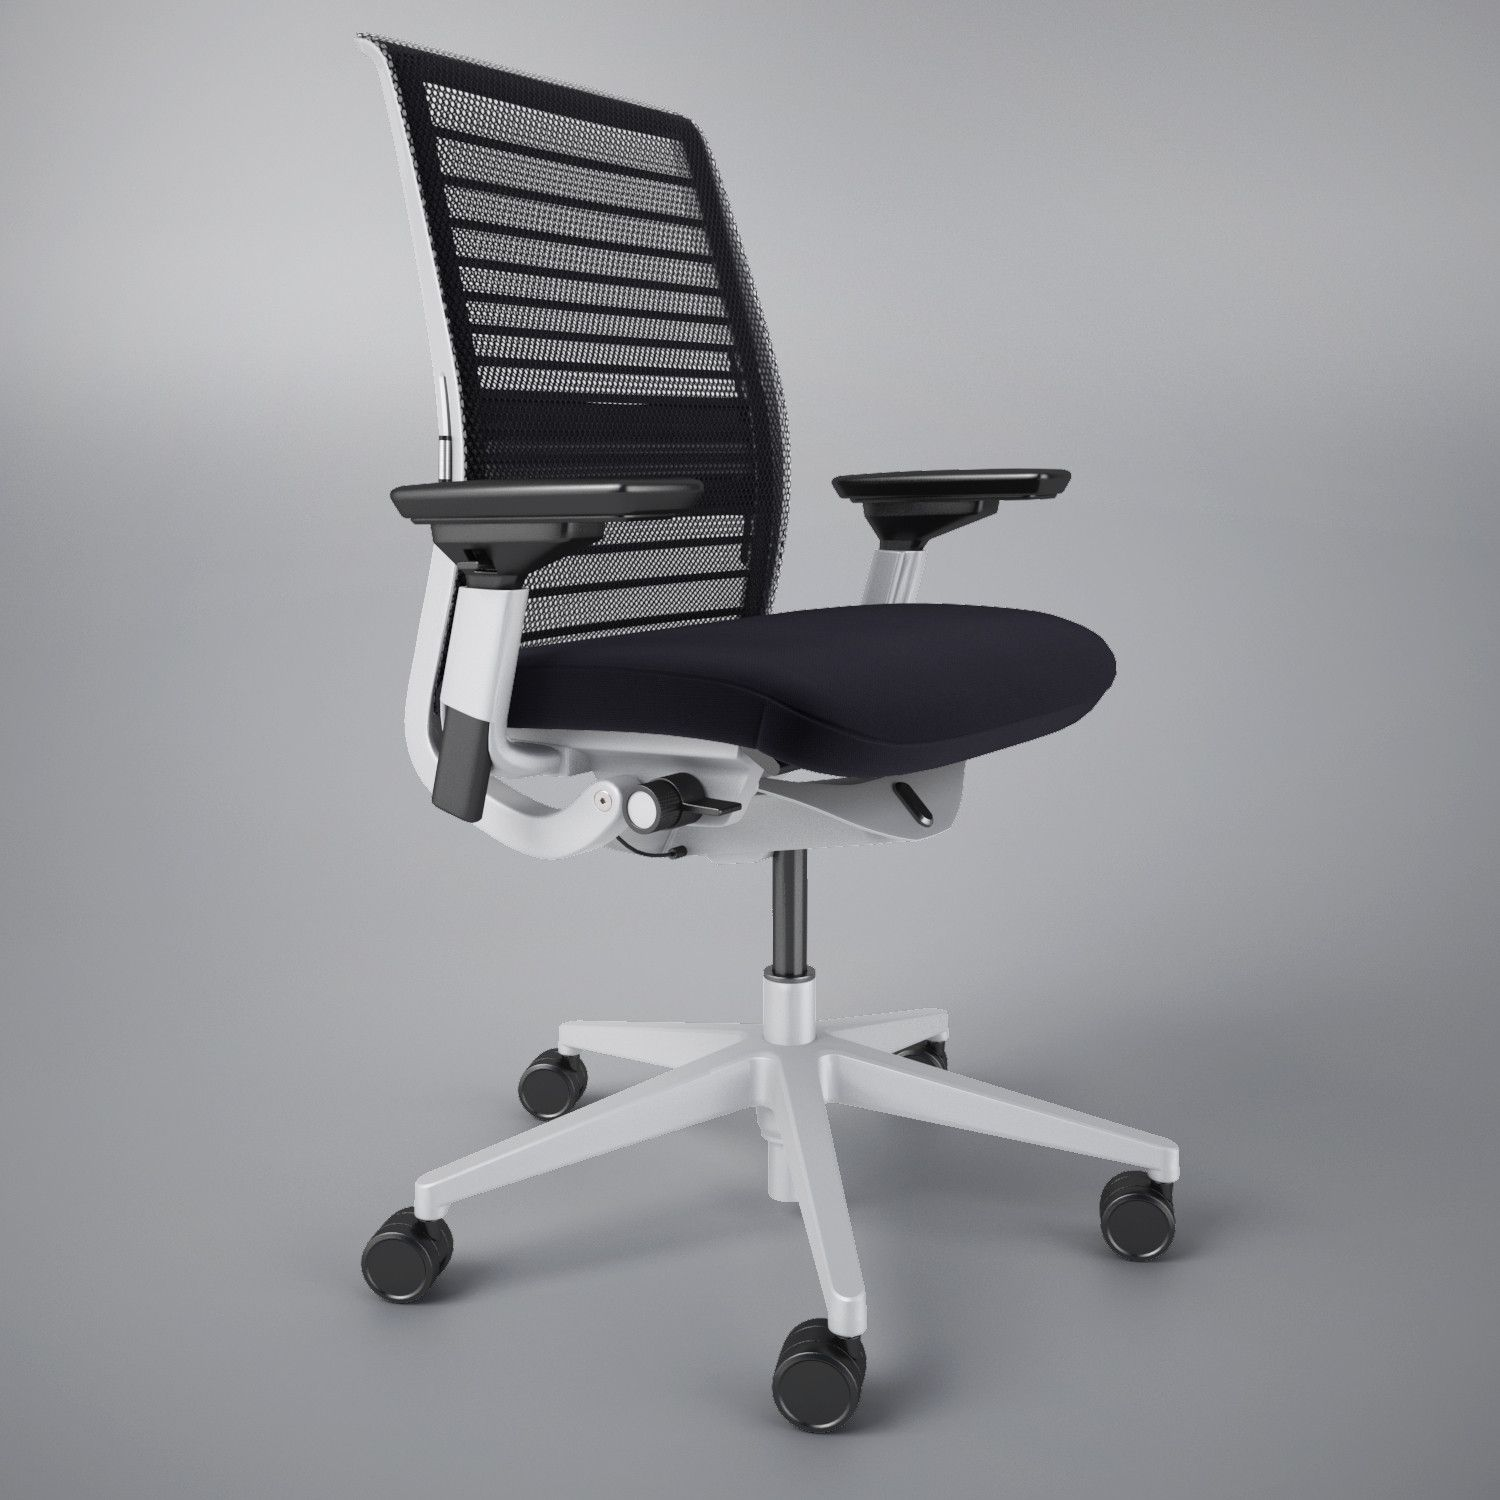 Steelcase Think Chair Max Steelcase Think Office Chair Office Design Ui Path Chair